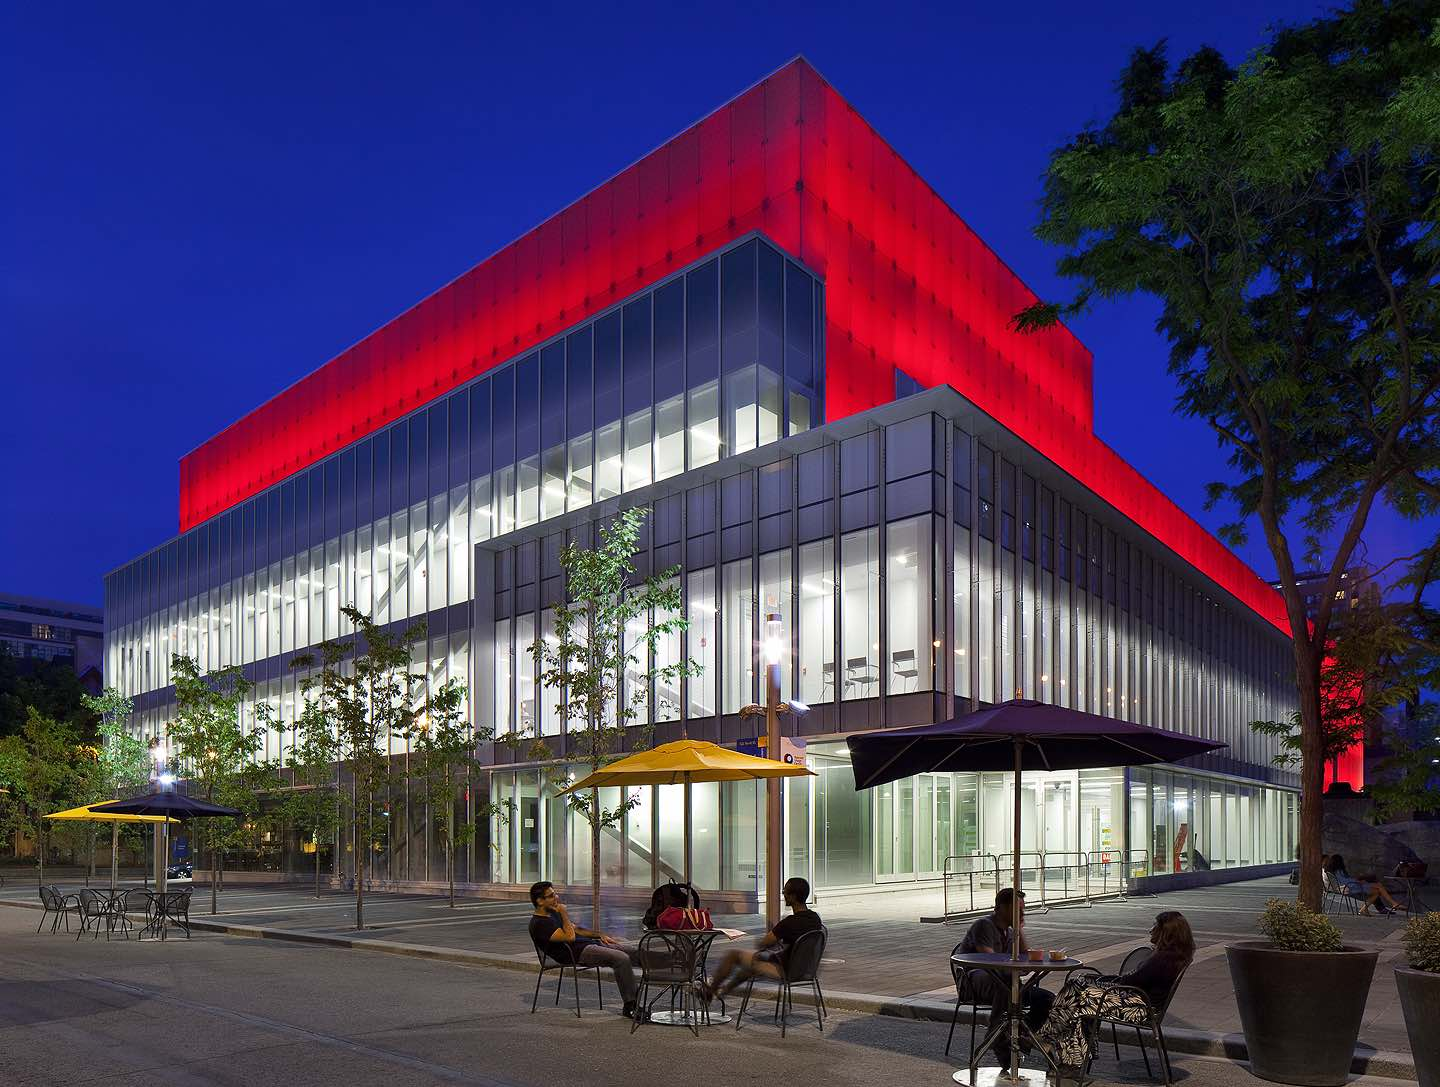 ryerson image centre. photo by tom arban.